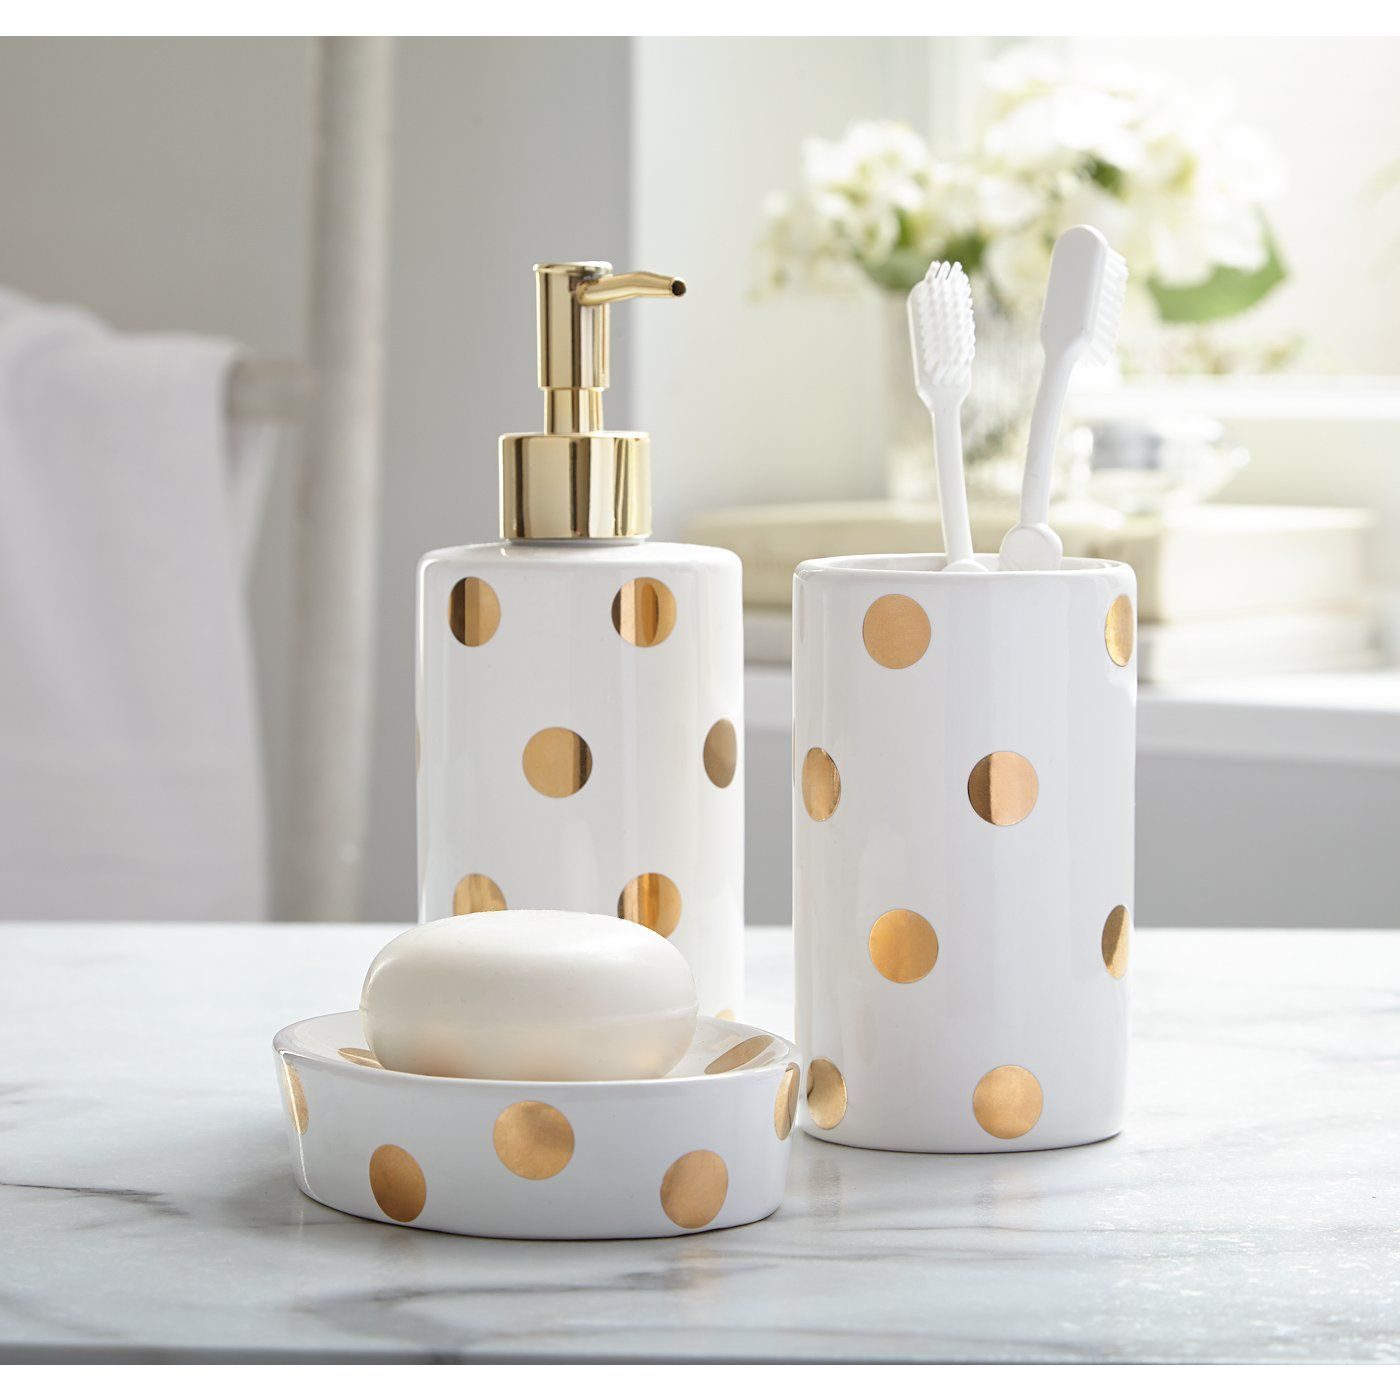 Buy George Home Gold Spot Bathroom Accessories from our Bathroom ...